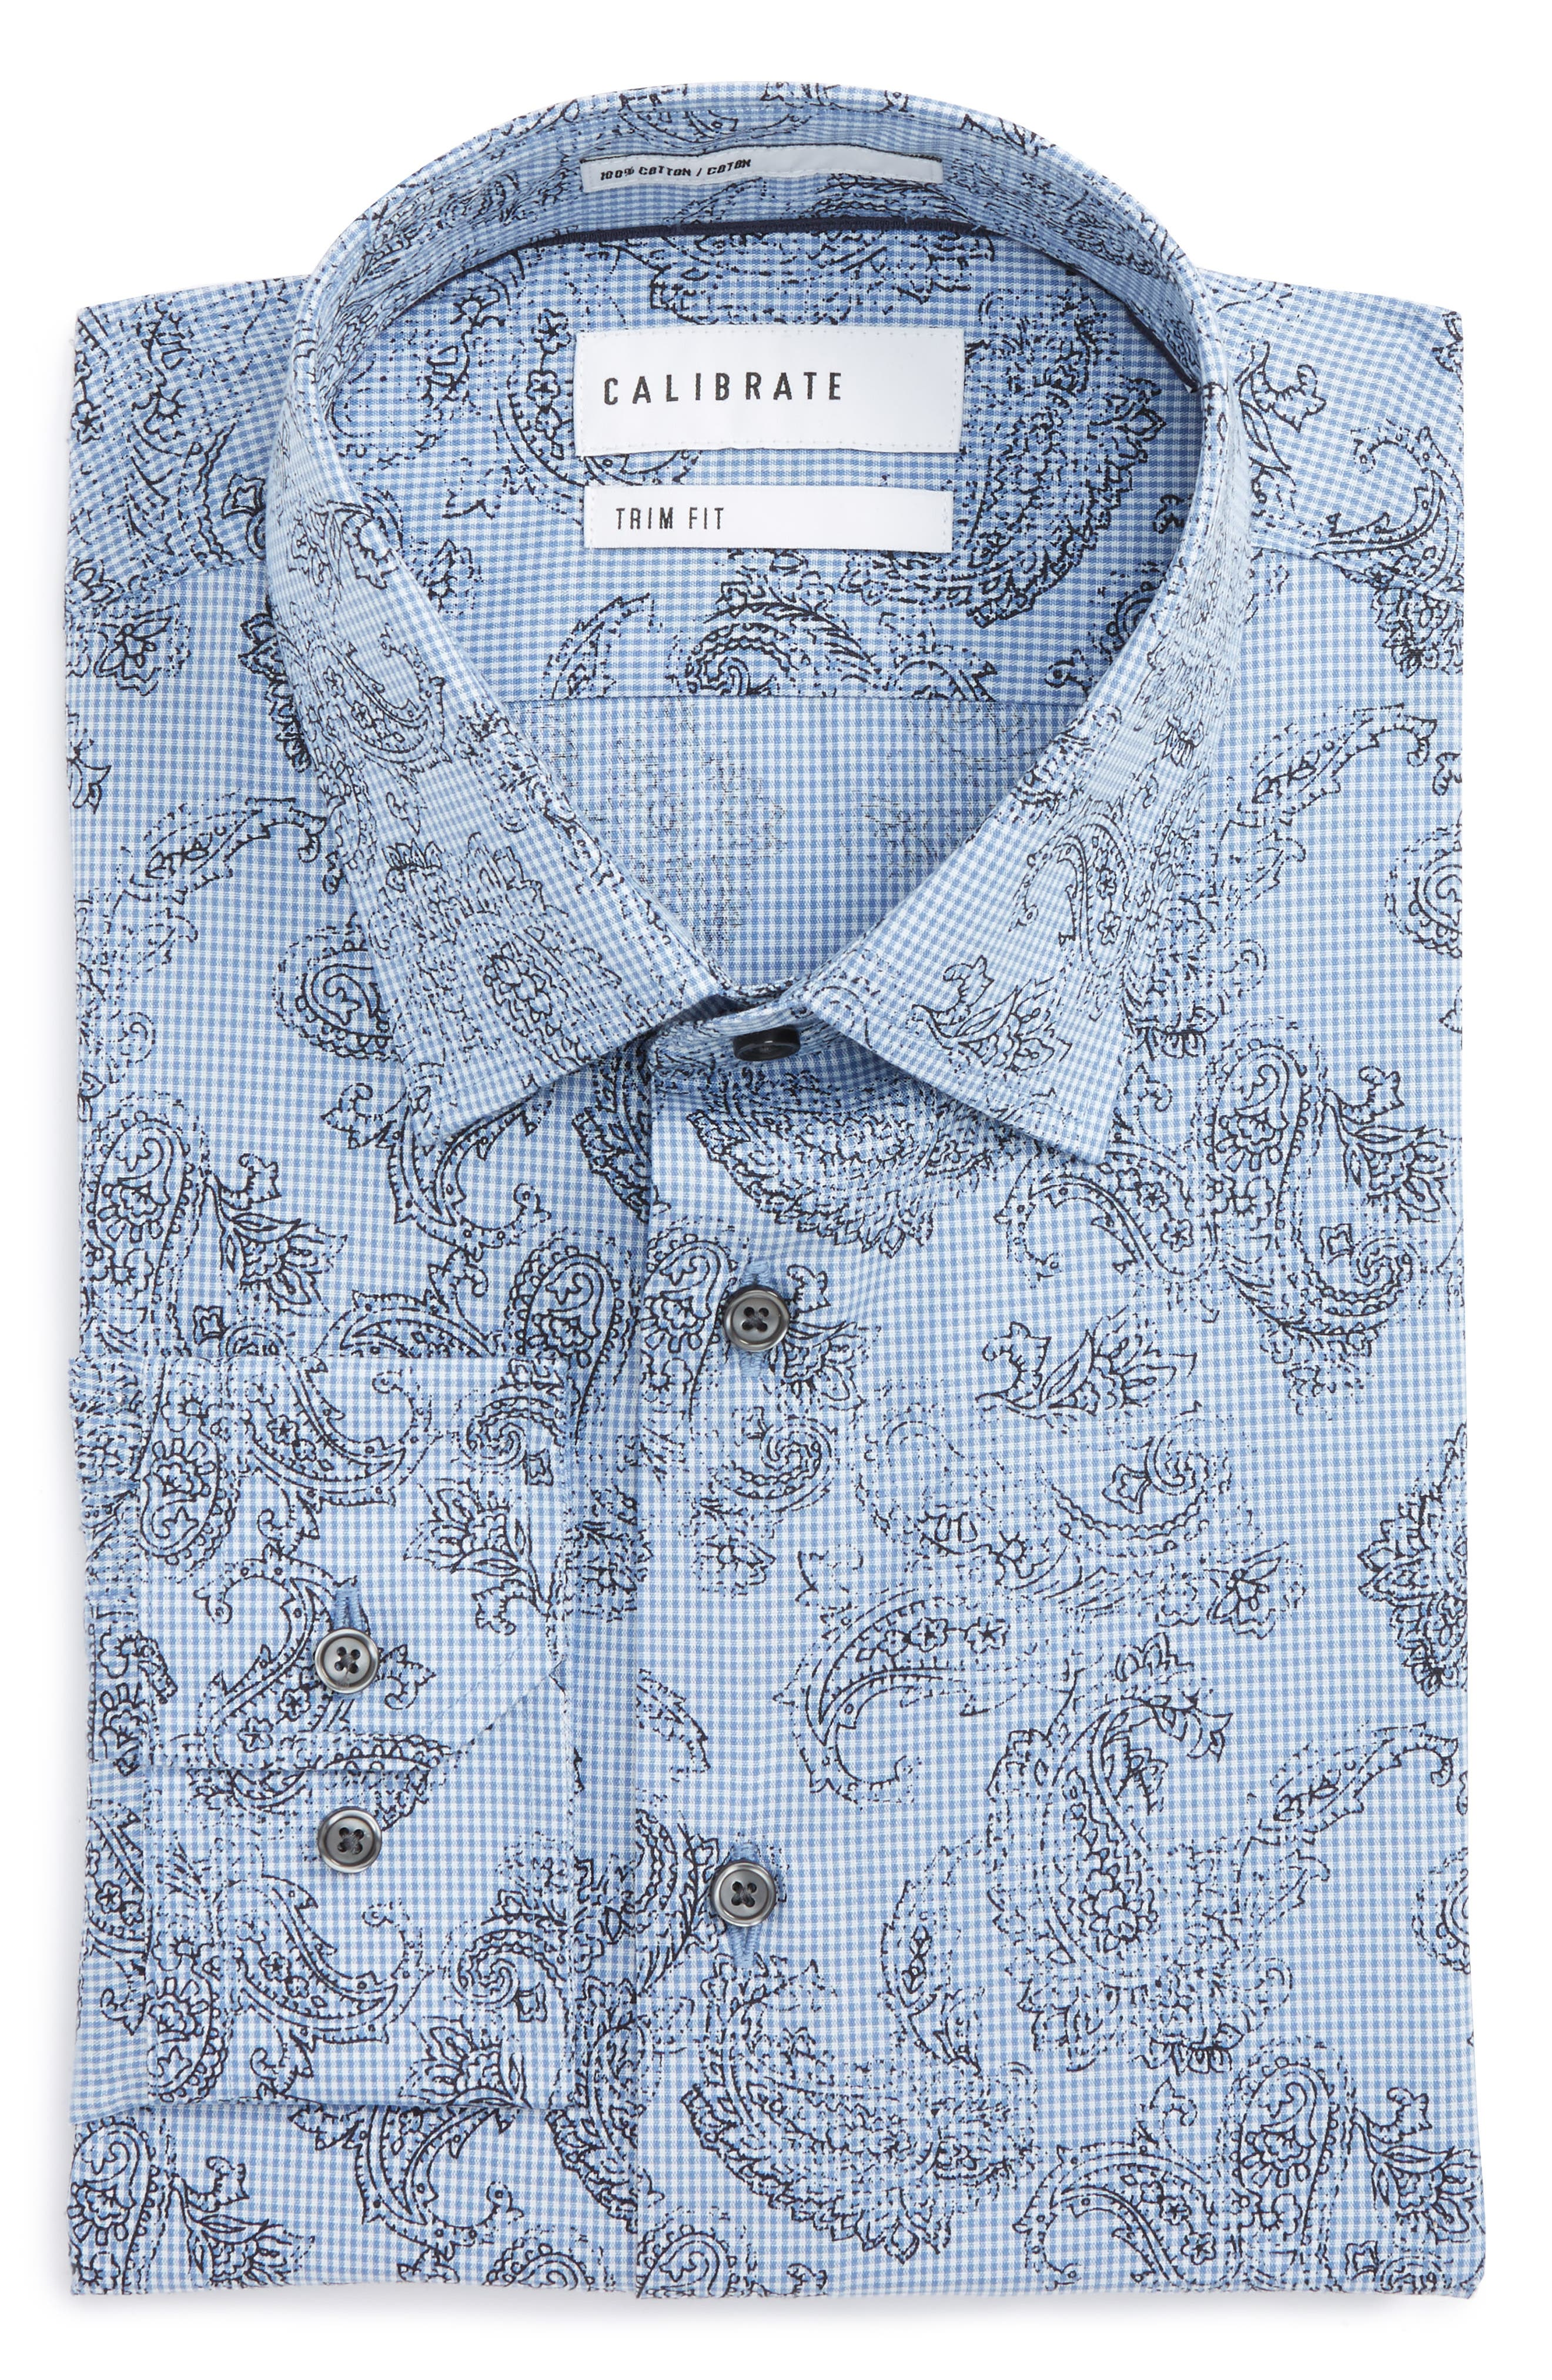 Calibrate Trim Fit Paisley Plaid Dress Shirt